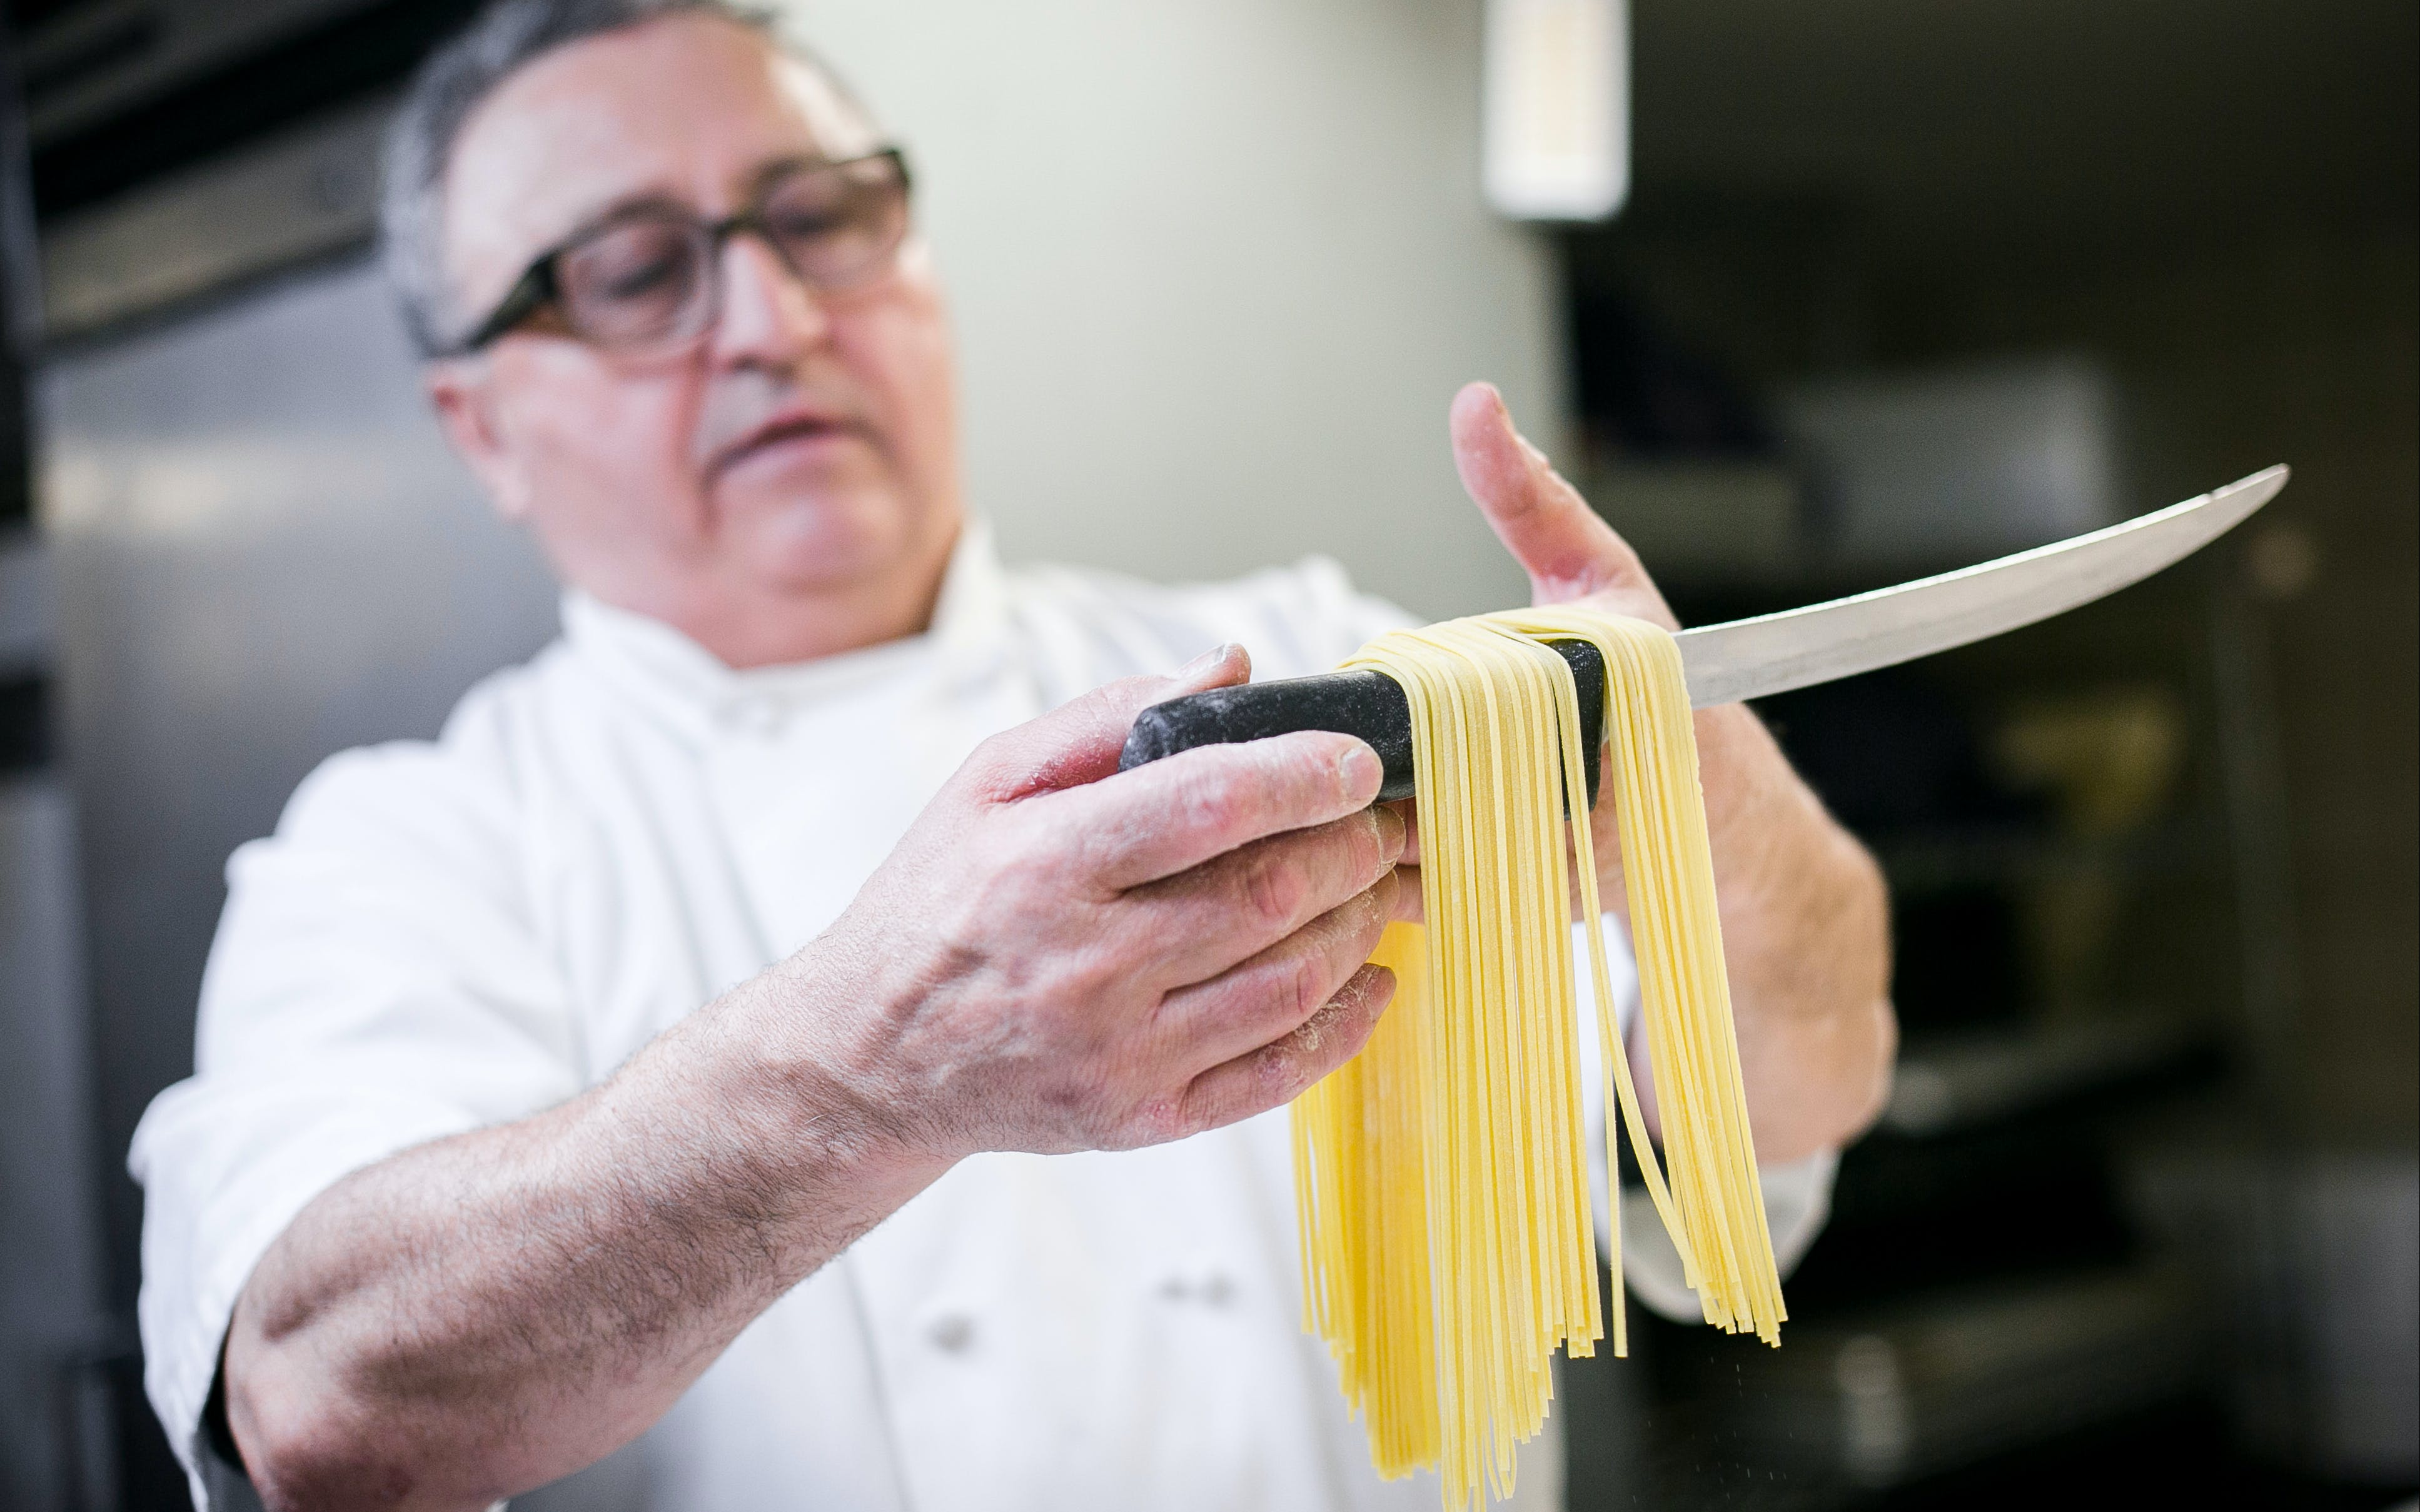 pasta-making class: cook, dine & drink wine with a local chef-2